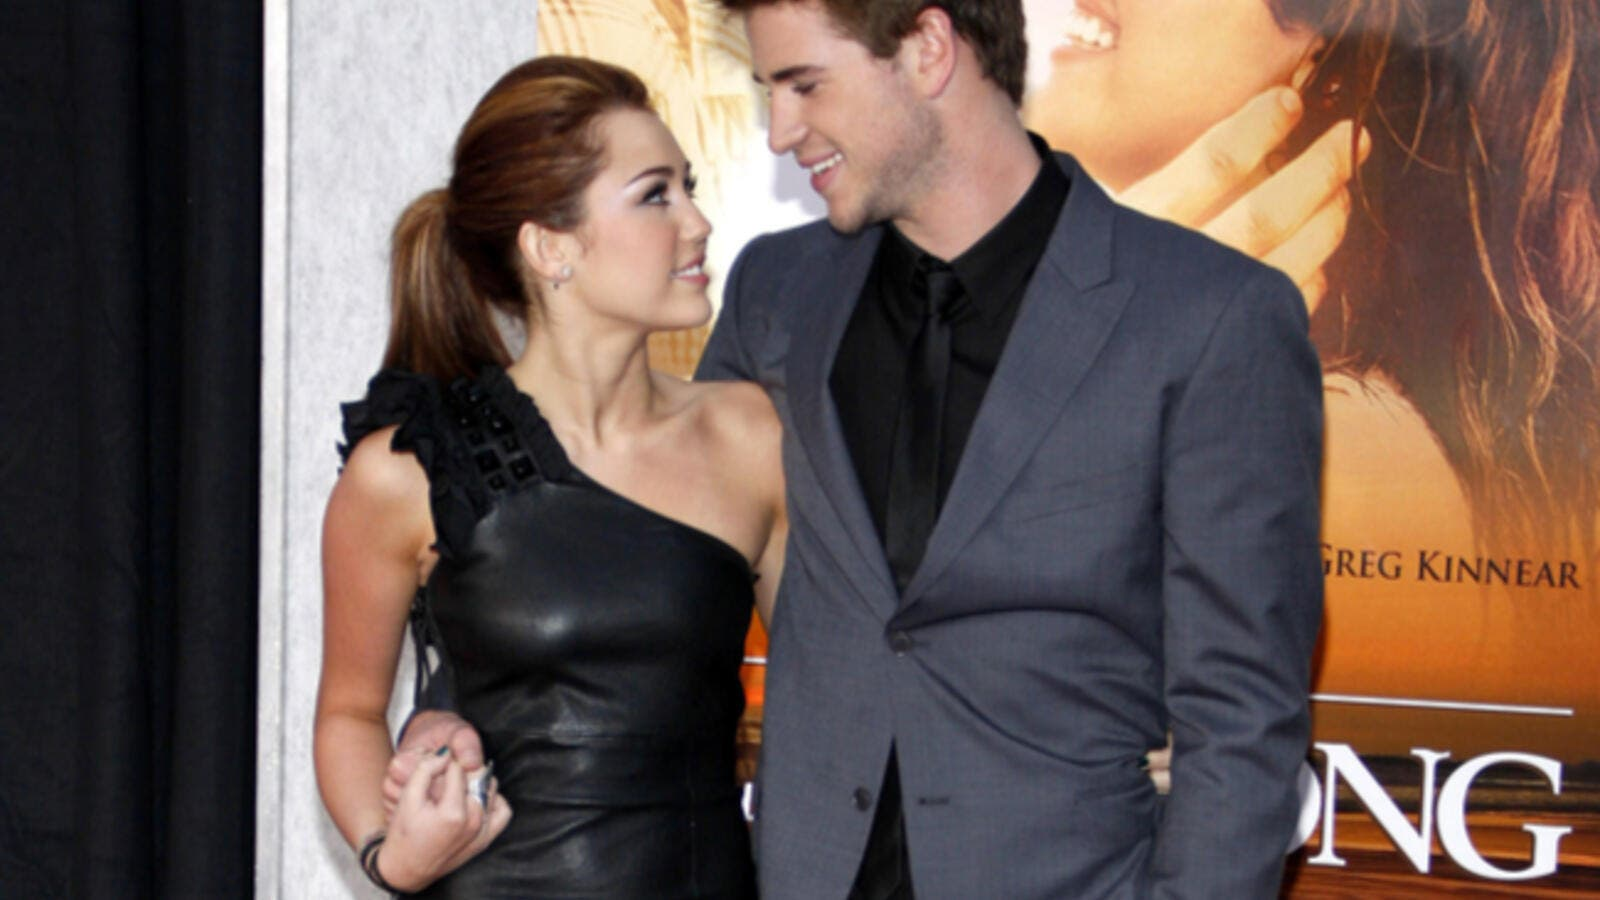 Miley and Liam started dating in 2009 after meeting on the set of 'Last Song' (Source: Tinseltown - Shutterstock)